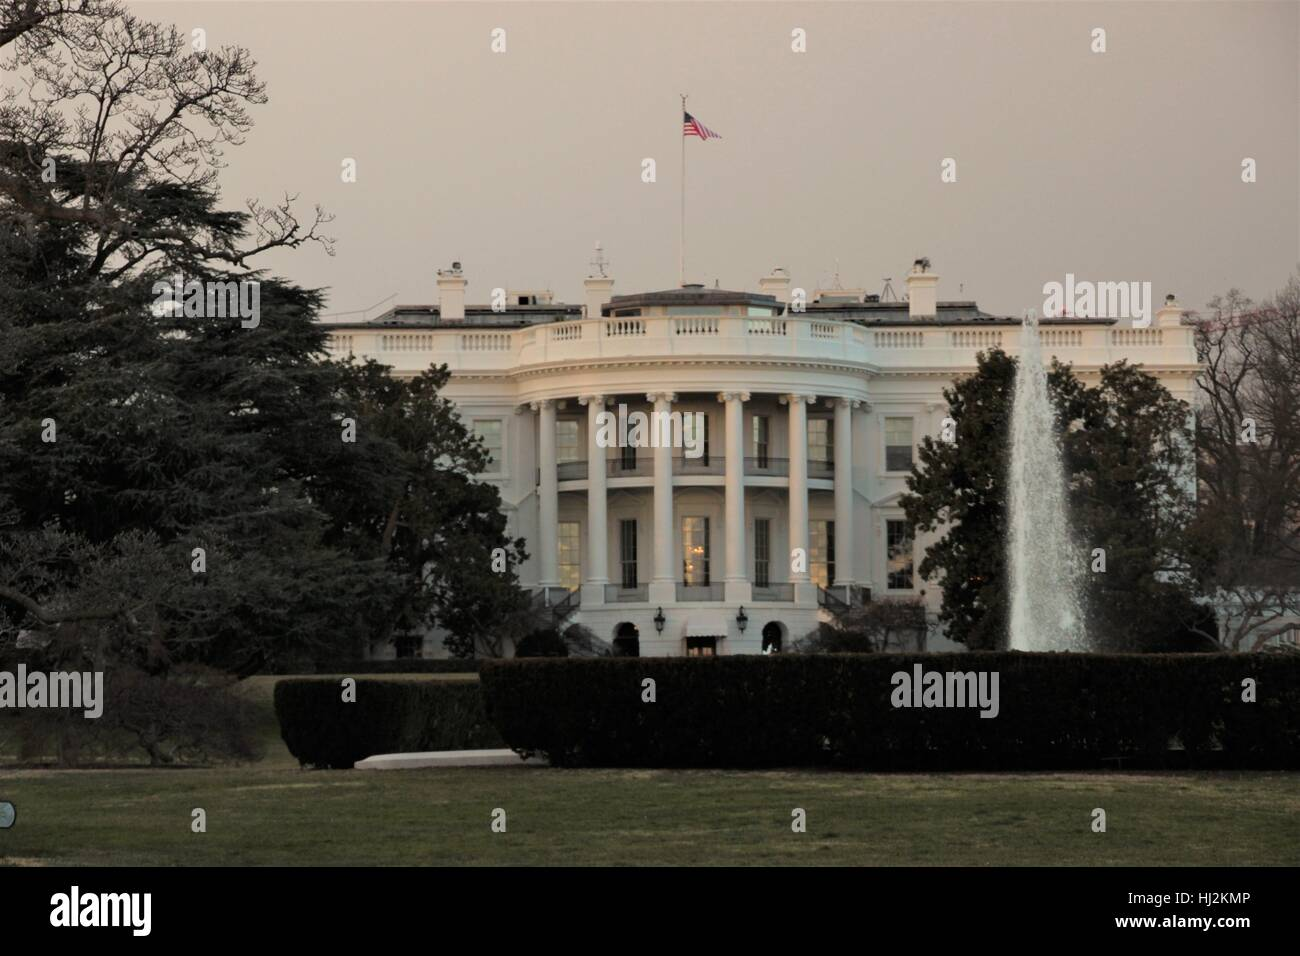 White House, official residence of the president of the United States of America - Stock Image